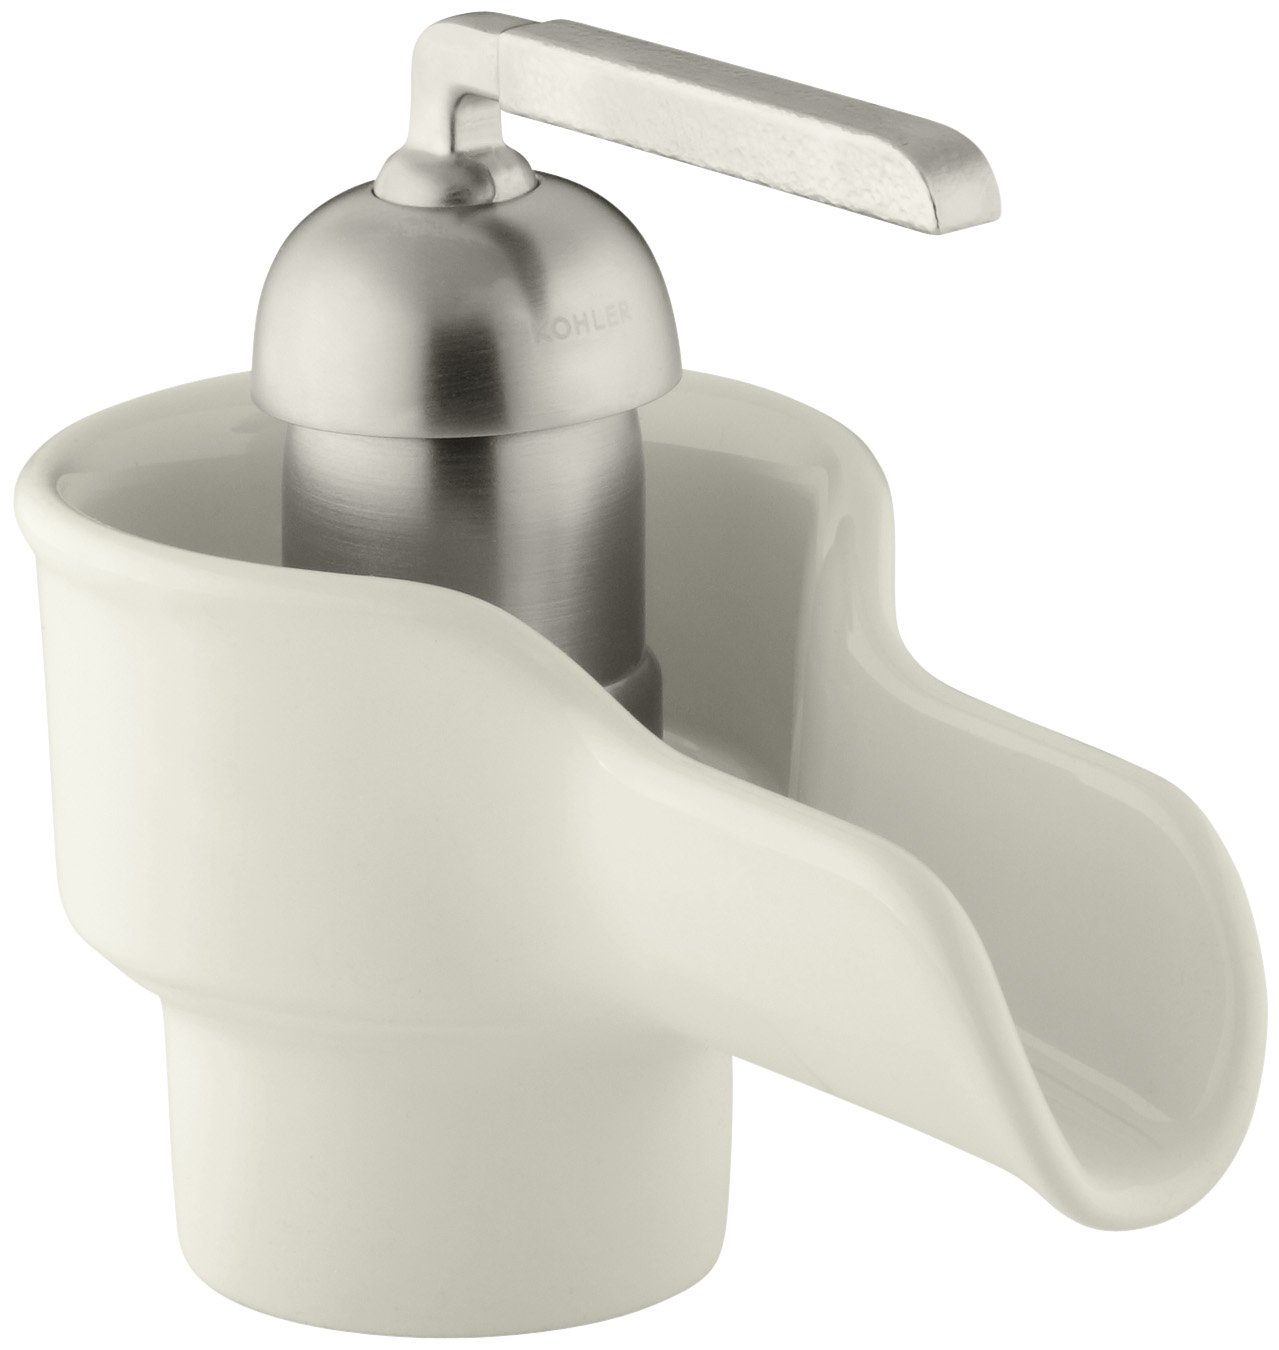 KOHLER K 11000 0 Bol Ceramic Faucet, White   Touch On Bathroom Sink Faucets    Amazon.com